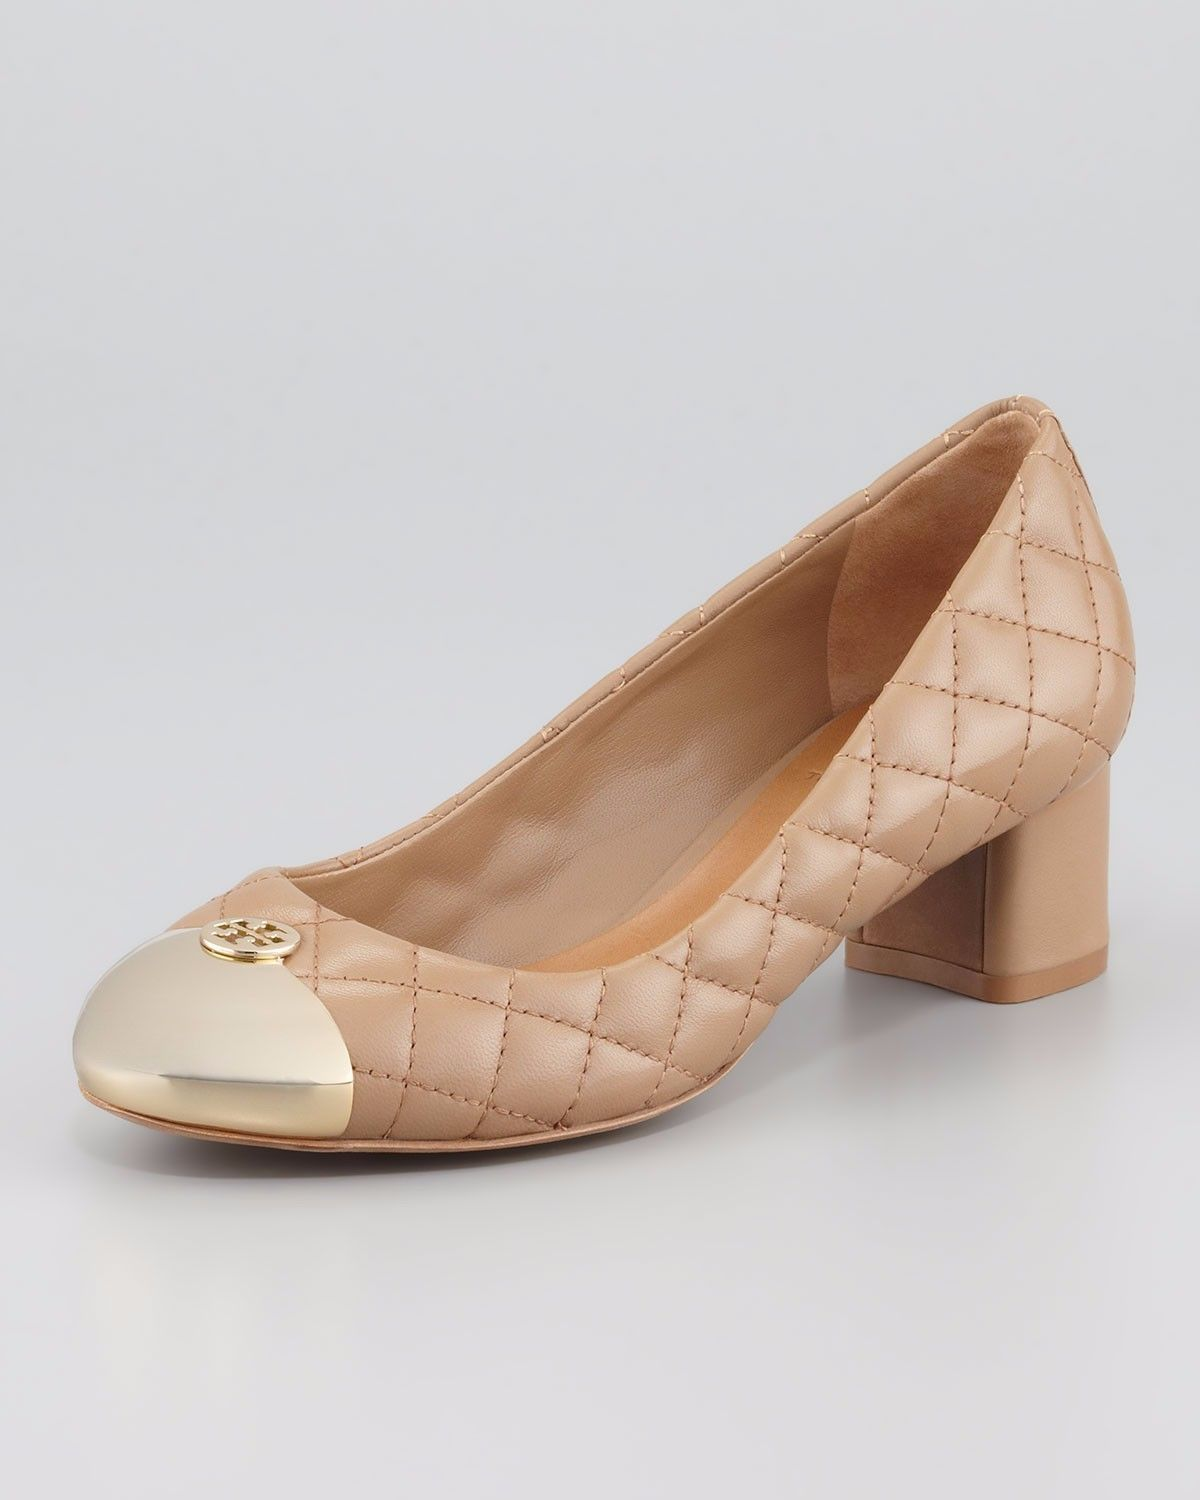 Tory Burch Quilted Cap-Toe Pumps cheapest price for sale new ZHh6T6mN7